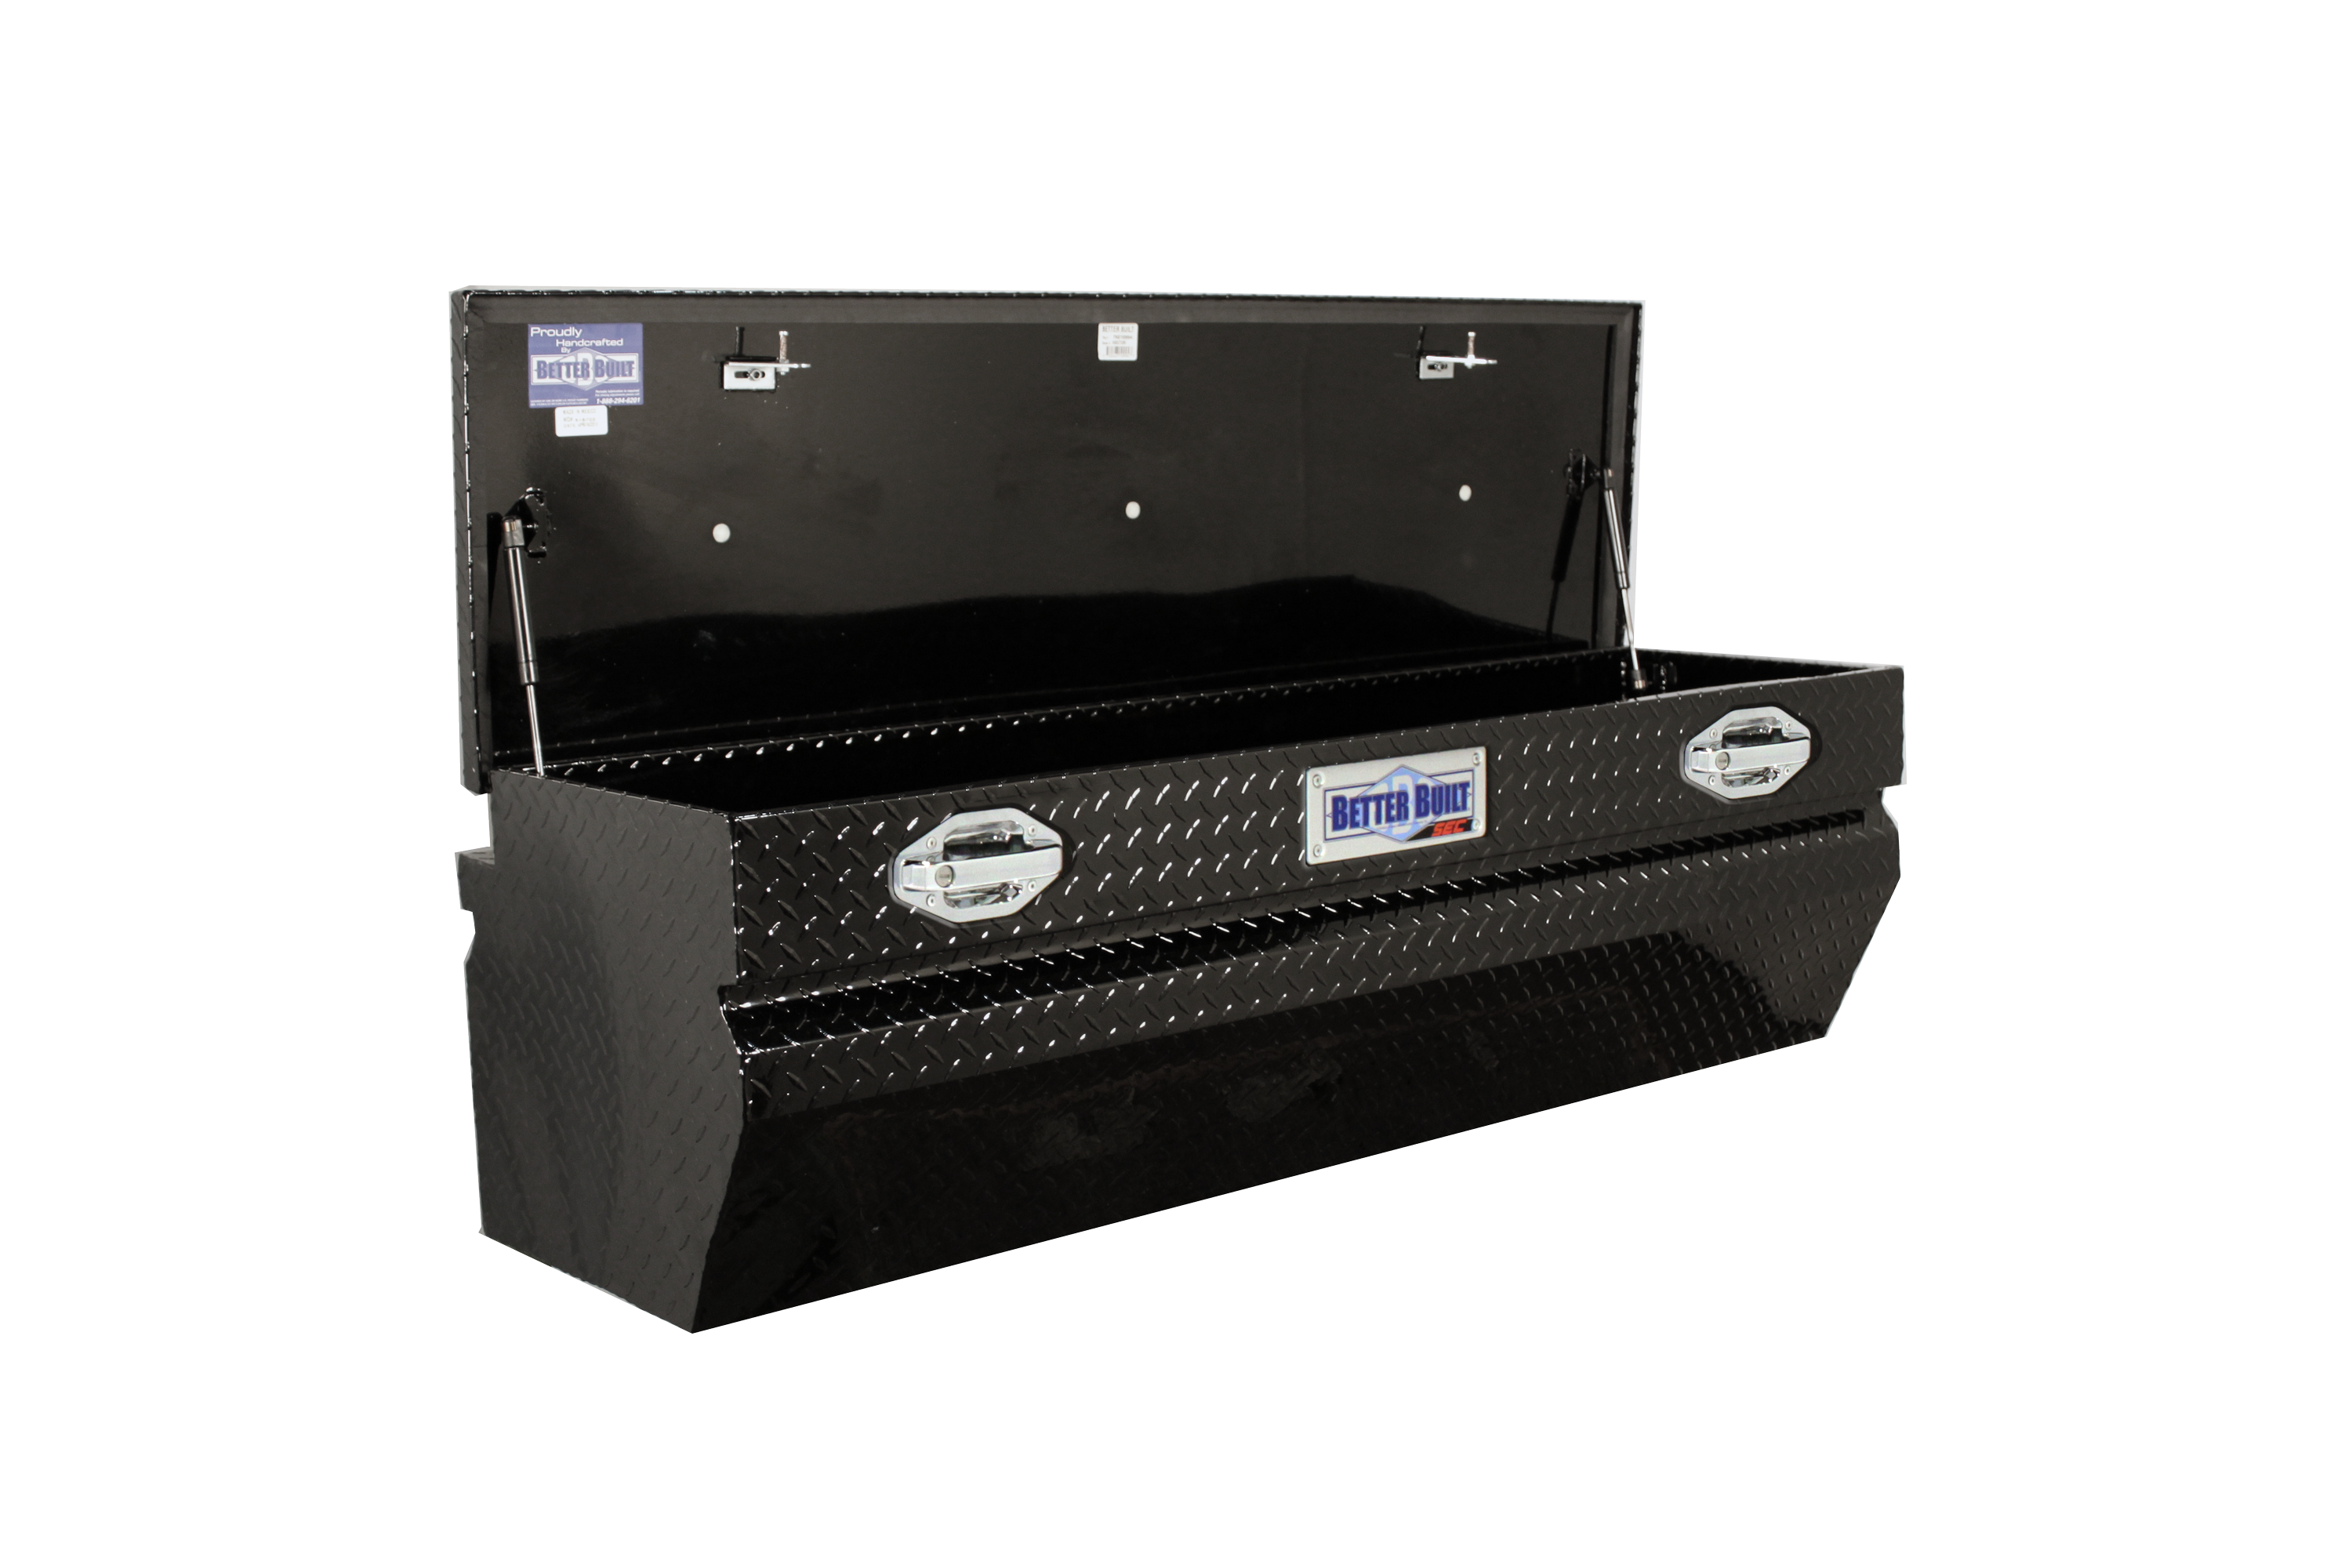 Better Built Tool Box – Top 7 Reviews ShedHeads